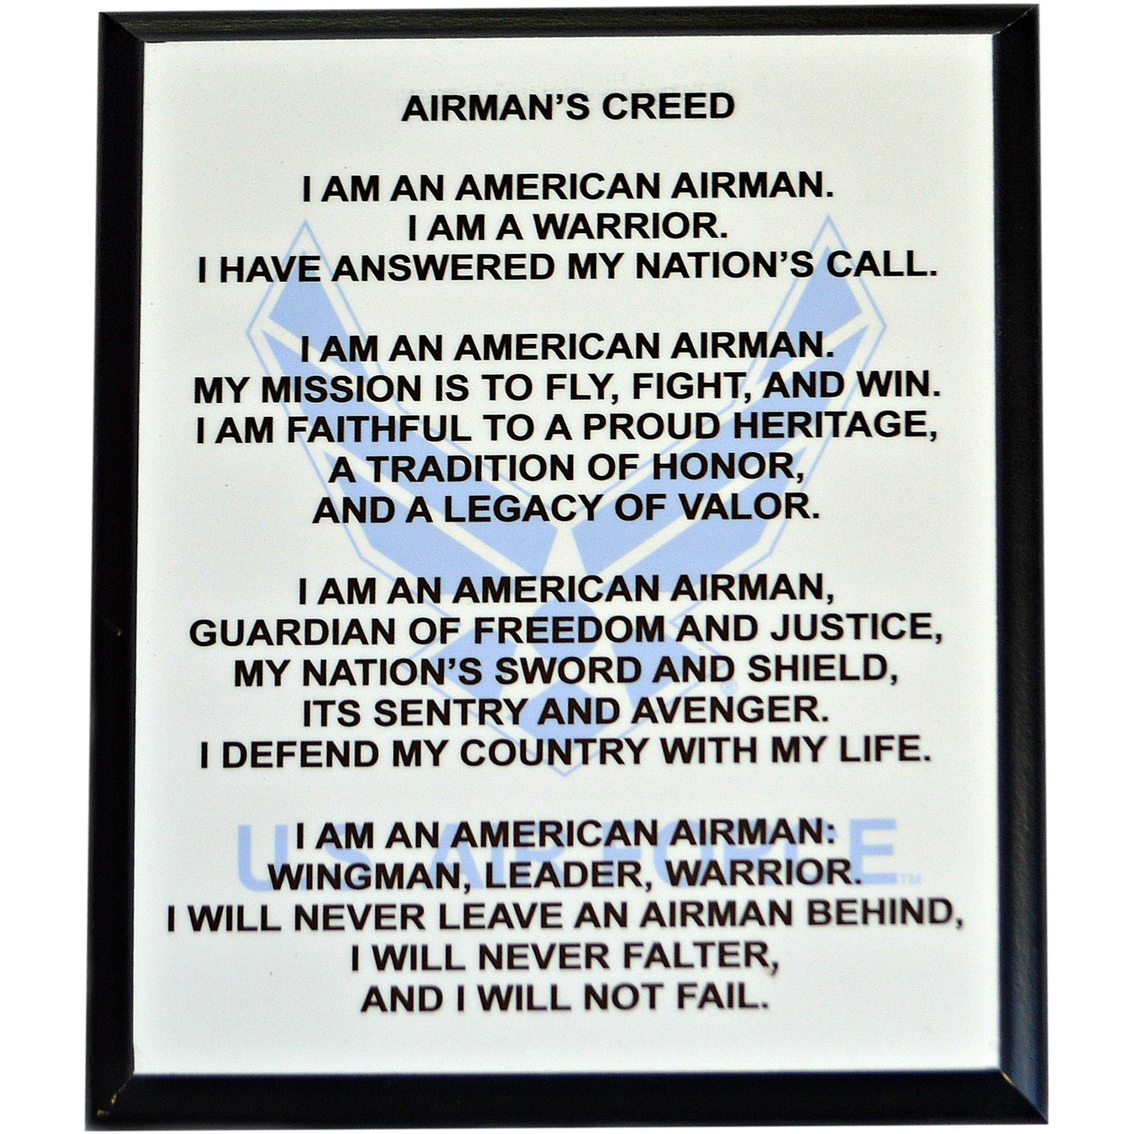 Mi engraving 8 x 10 usaf airman creed plaque military logo gear mi engraving 8 x 10 usaf airman creed plaque thecheapjerseys Images